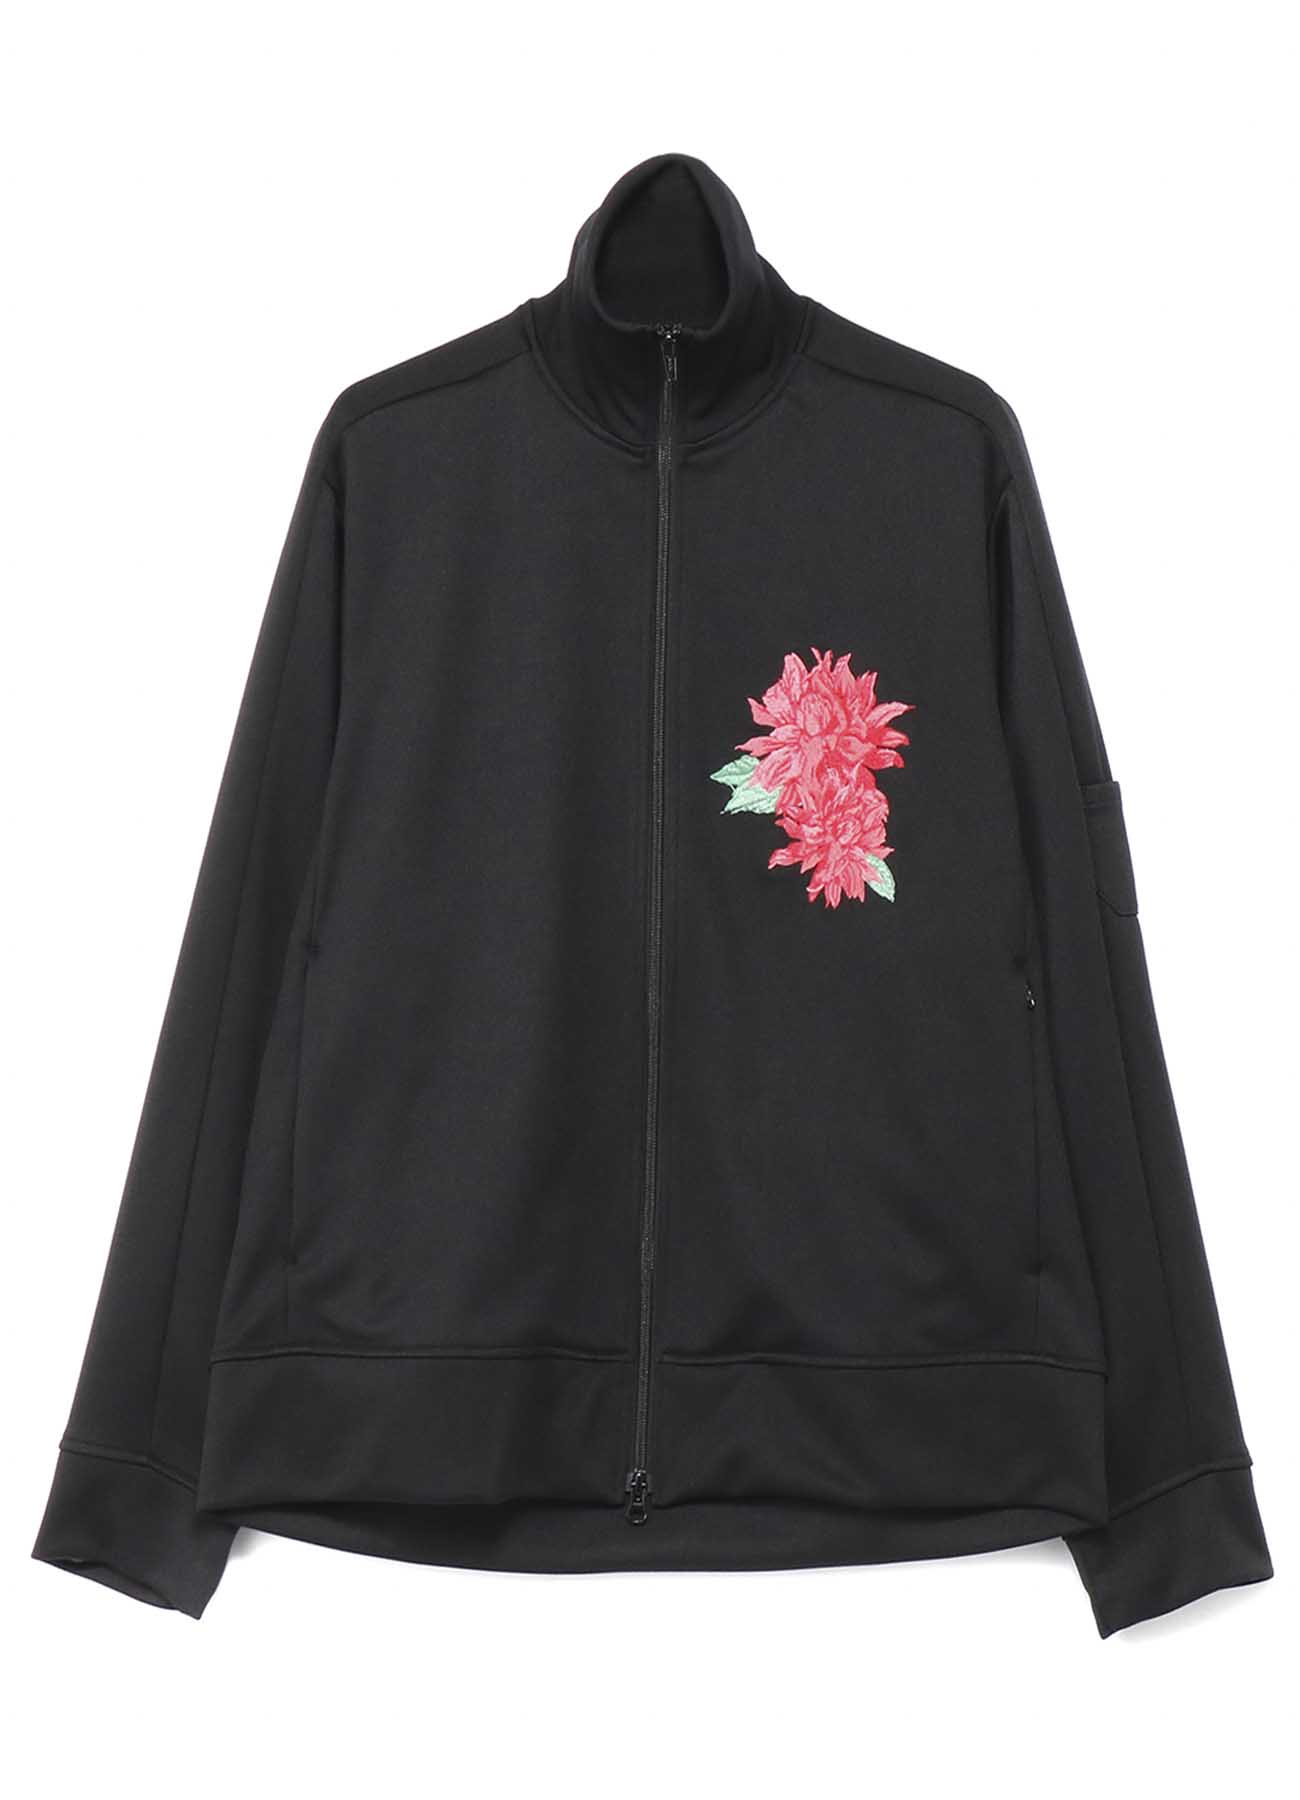 Pe/Smooth Jersey Dahlia Flower Embroidery Track Jacket